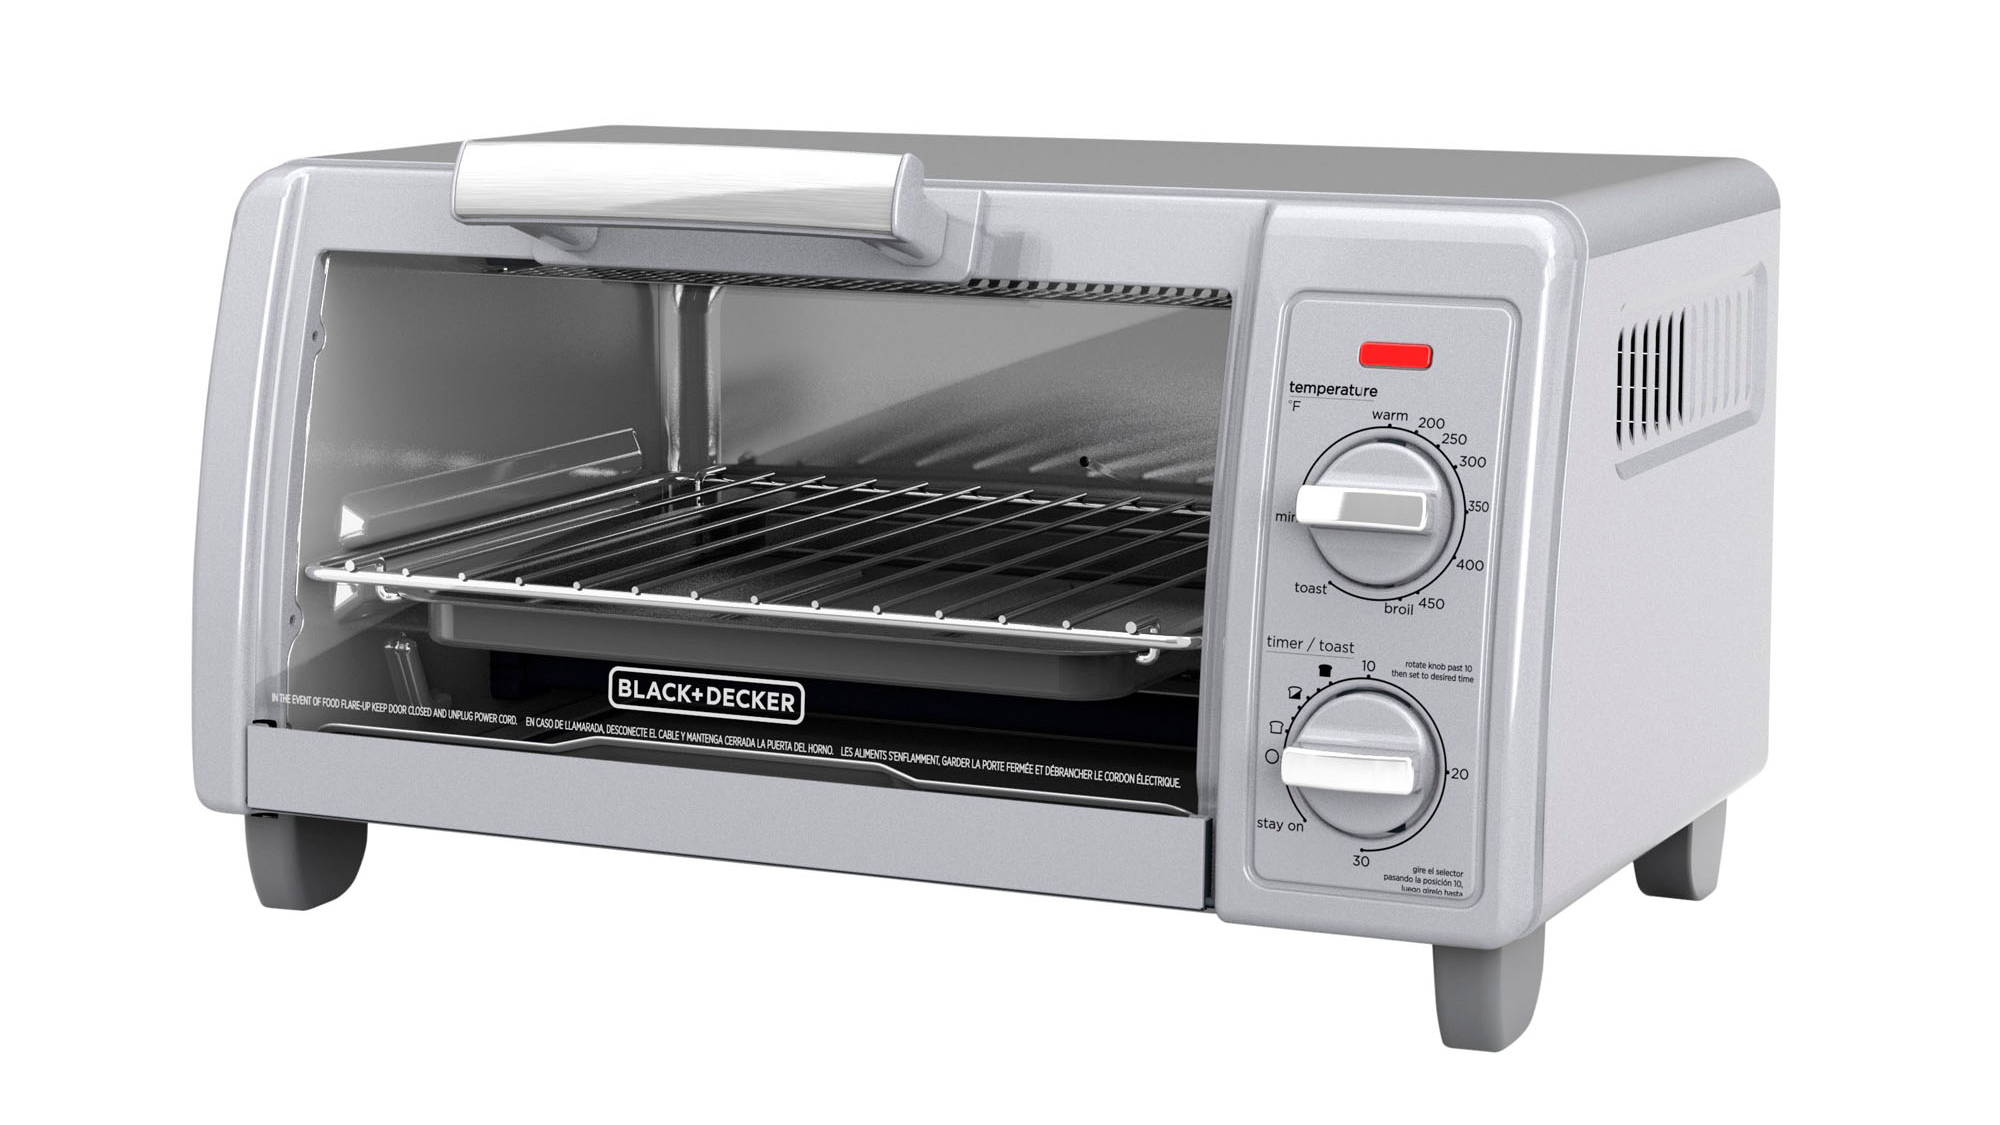 Black + Decker 4-Slice Toaster Oven with Easy Controls